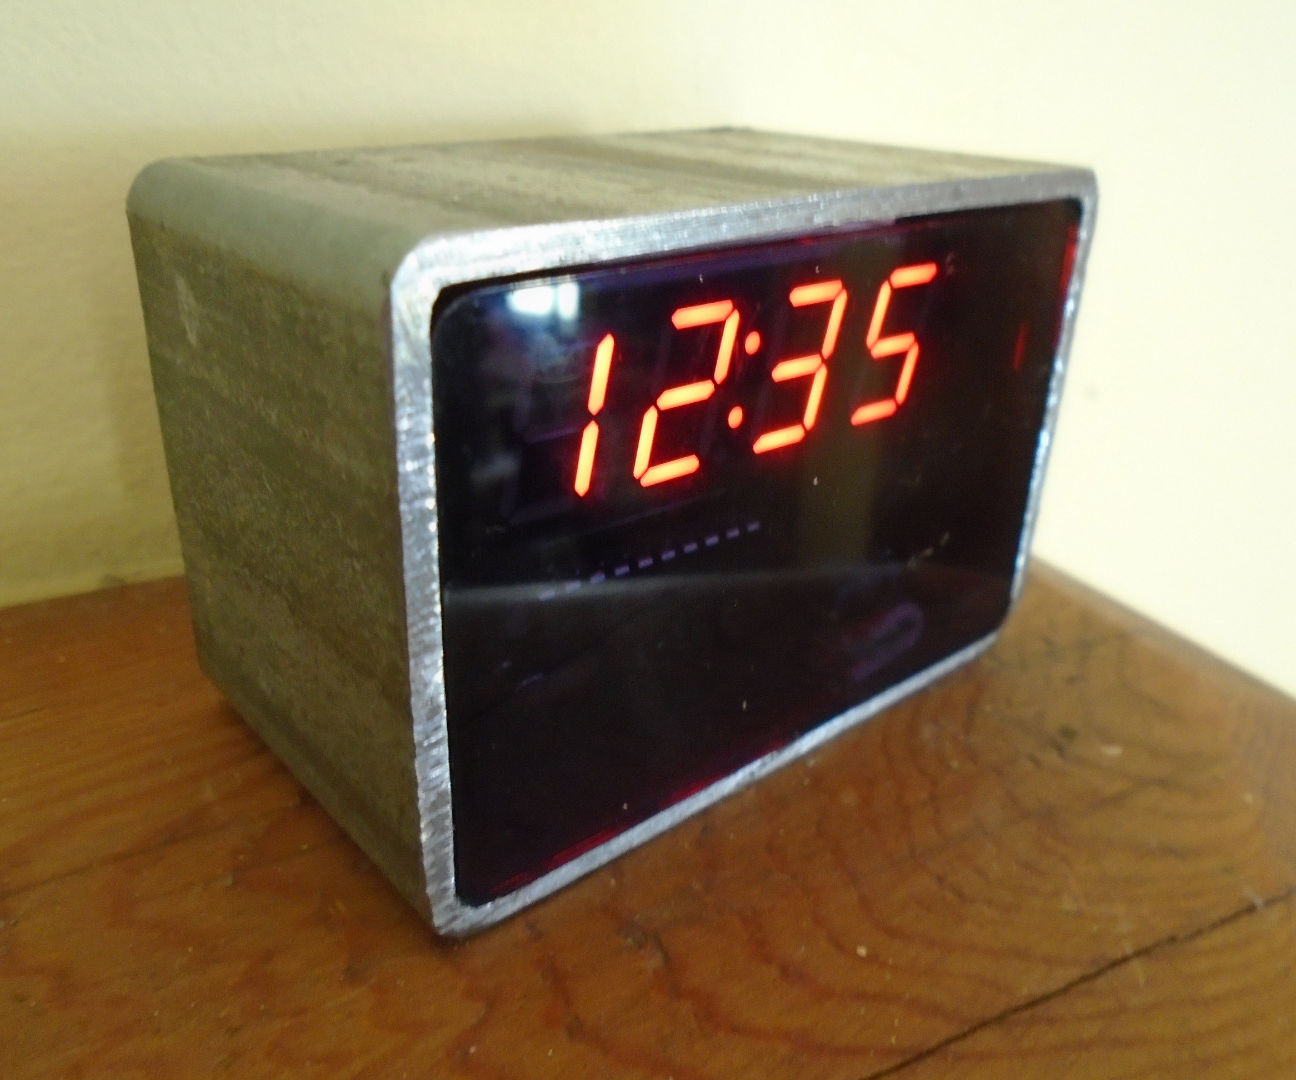 Bomb proof clock